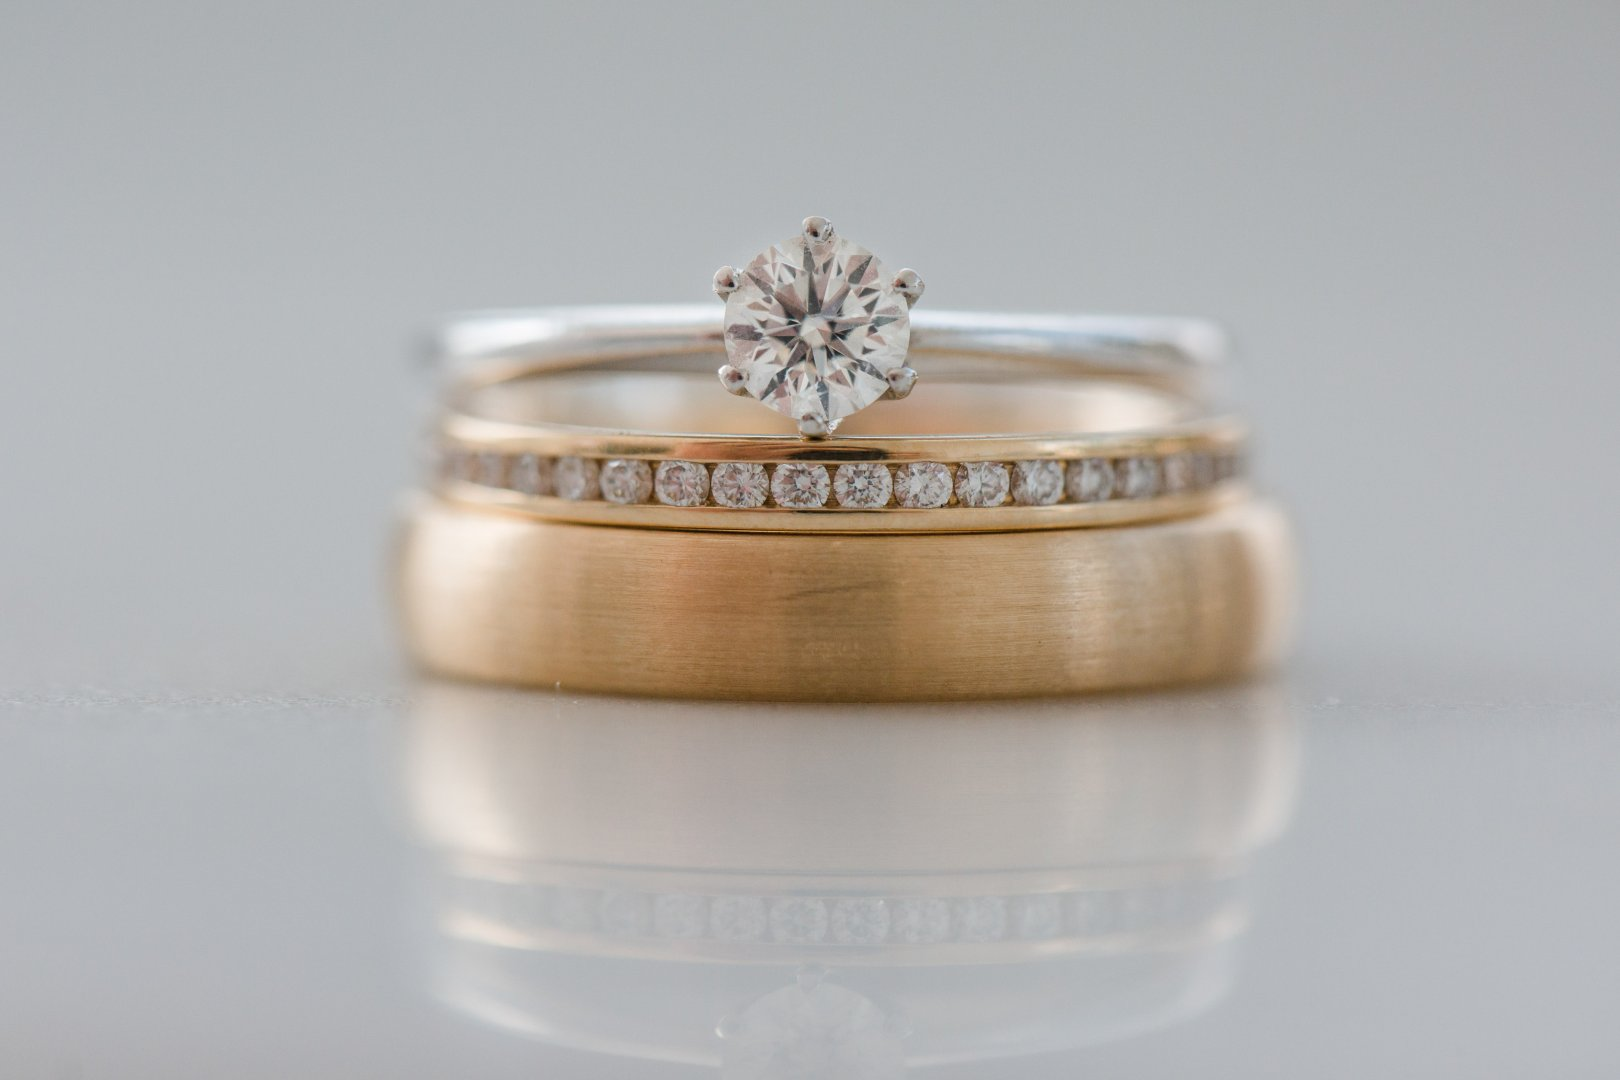 Ring Fashion accessory Product Jewellery Engagement ring Wedding ring Wedding ceremony supply Metal Diamond Platinum Gold Silver